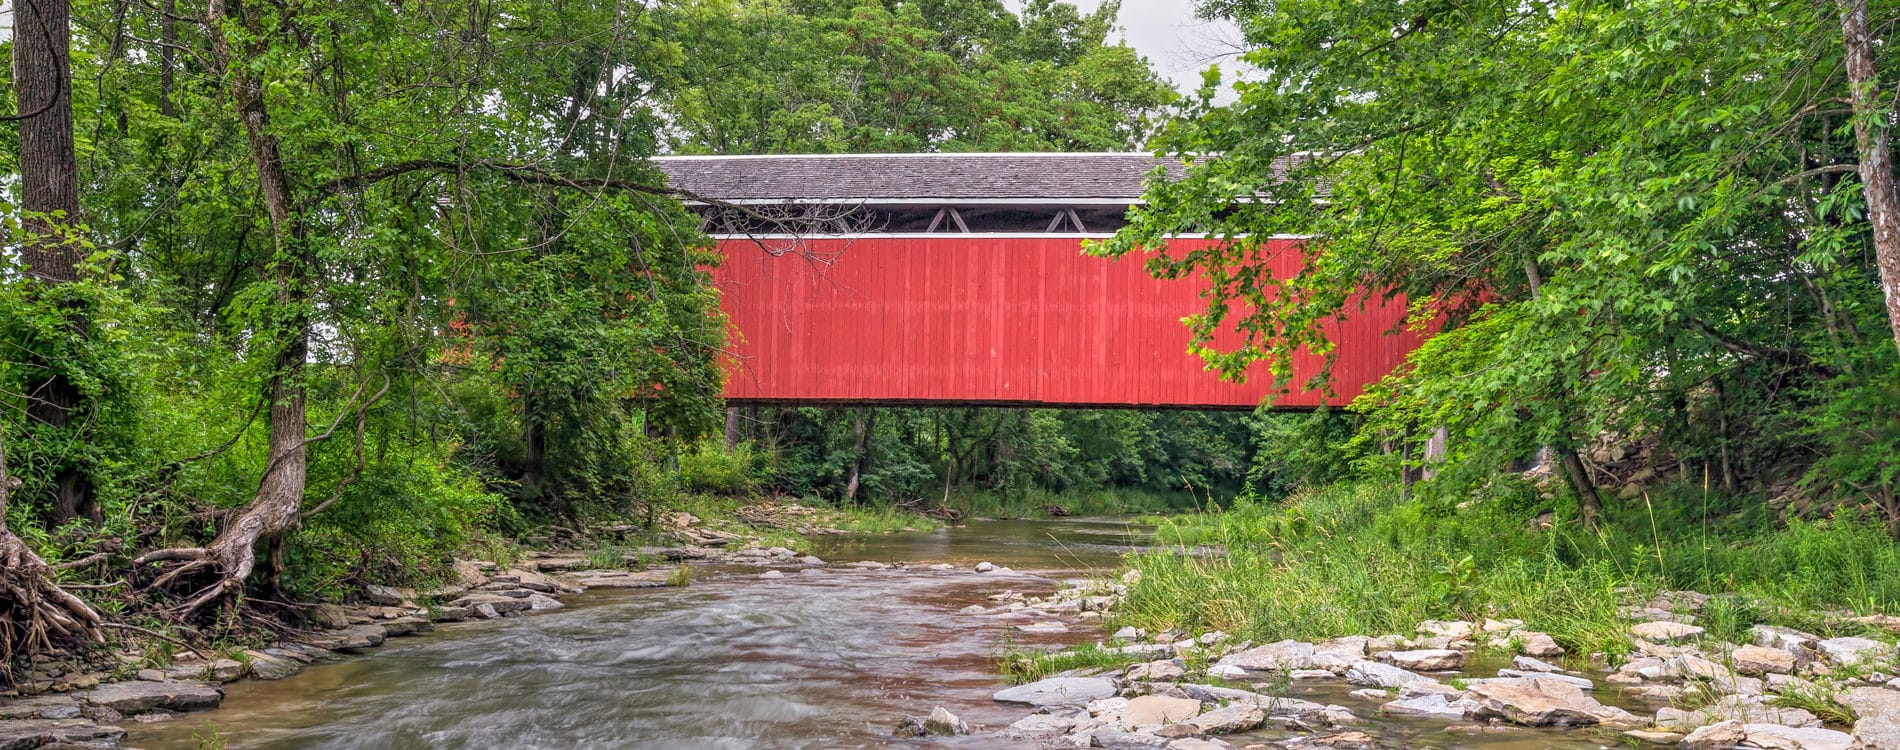 Enochsburg Covered Bridge over Salt Creek in Indiana